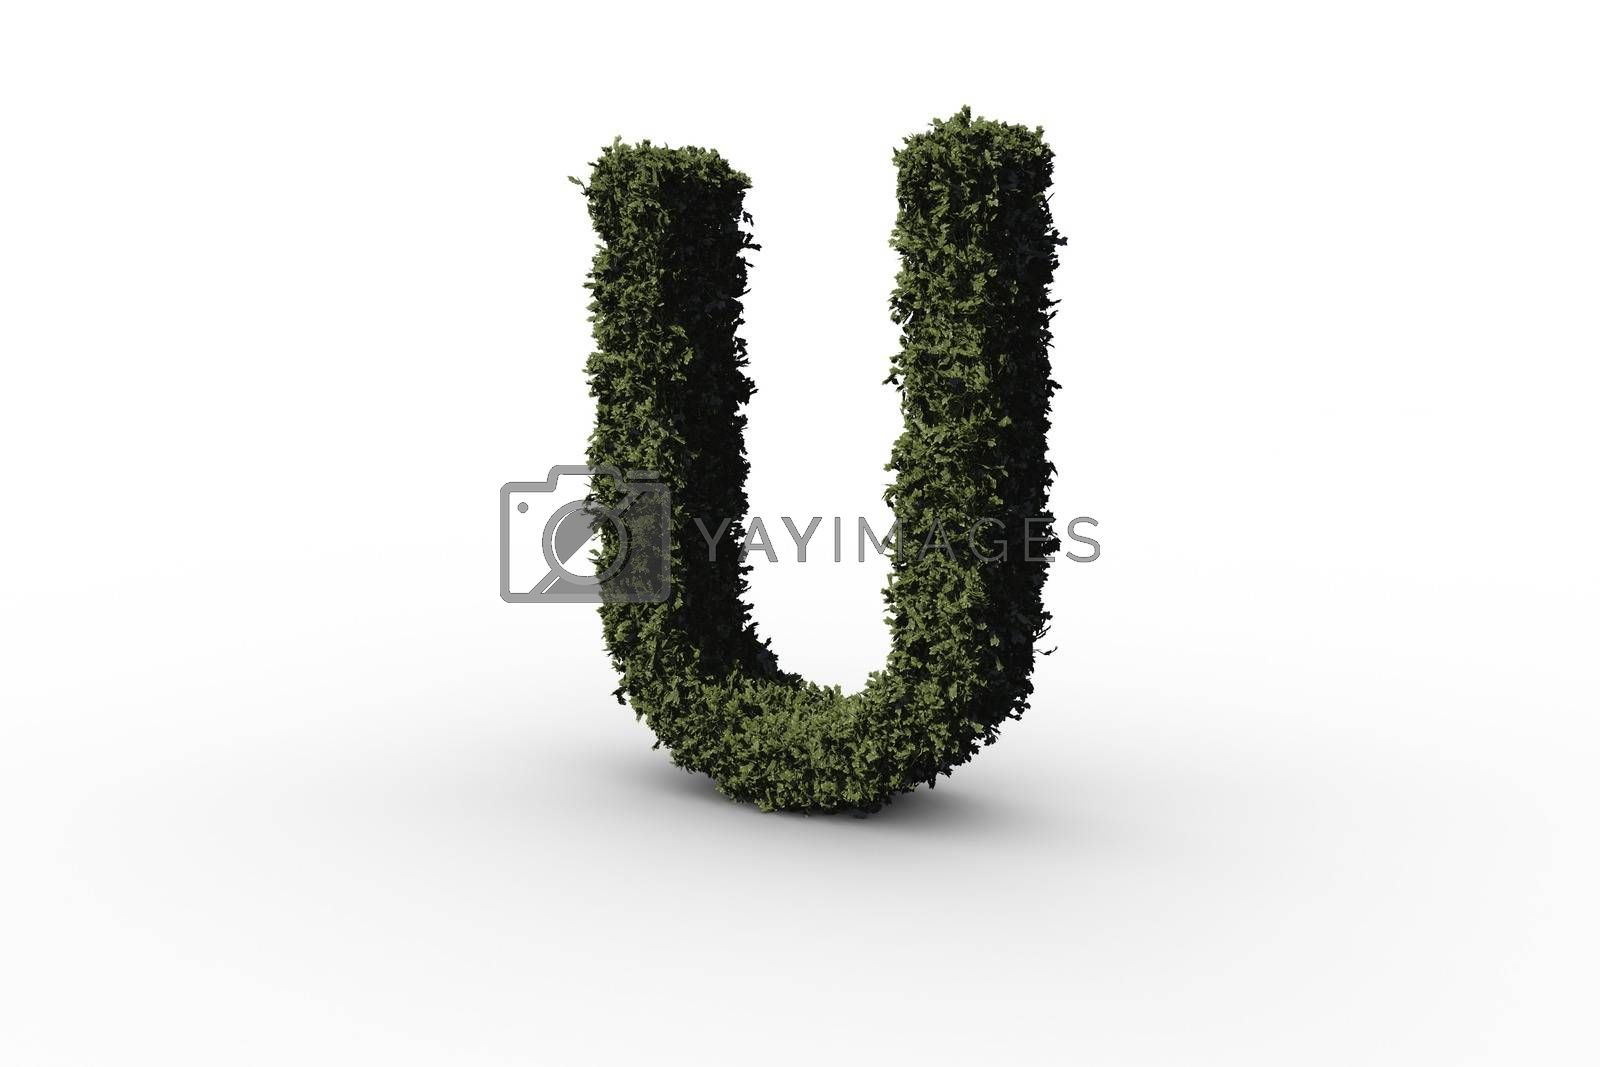 Royalty free image of Capital letter u made of leaves by Wavebreakmedia